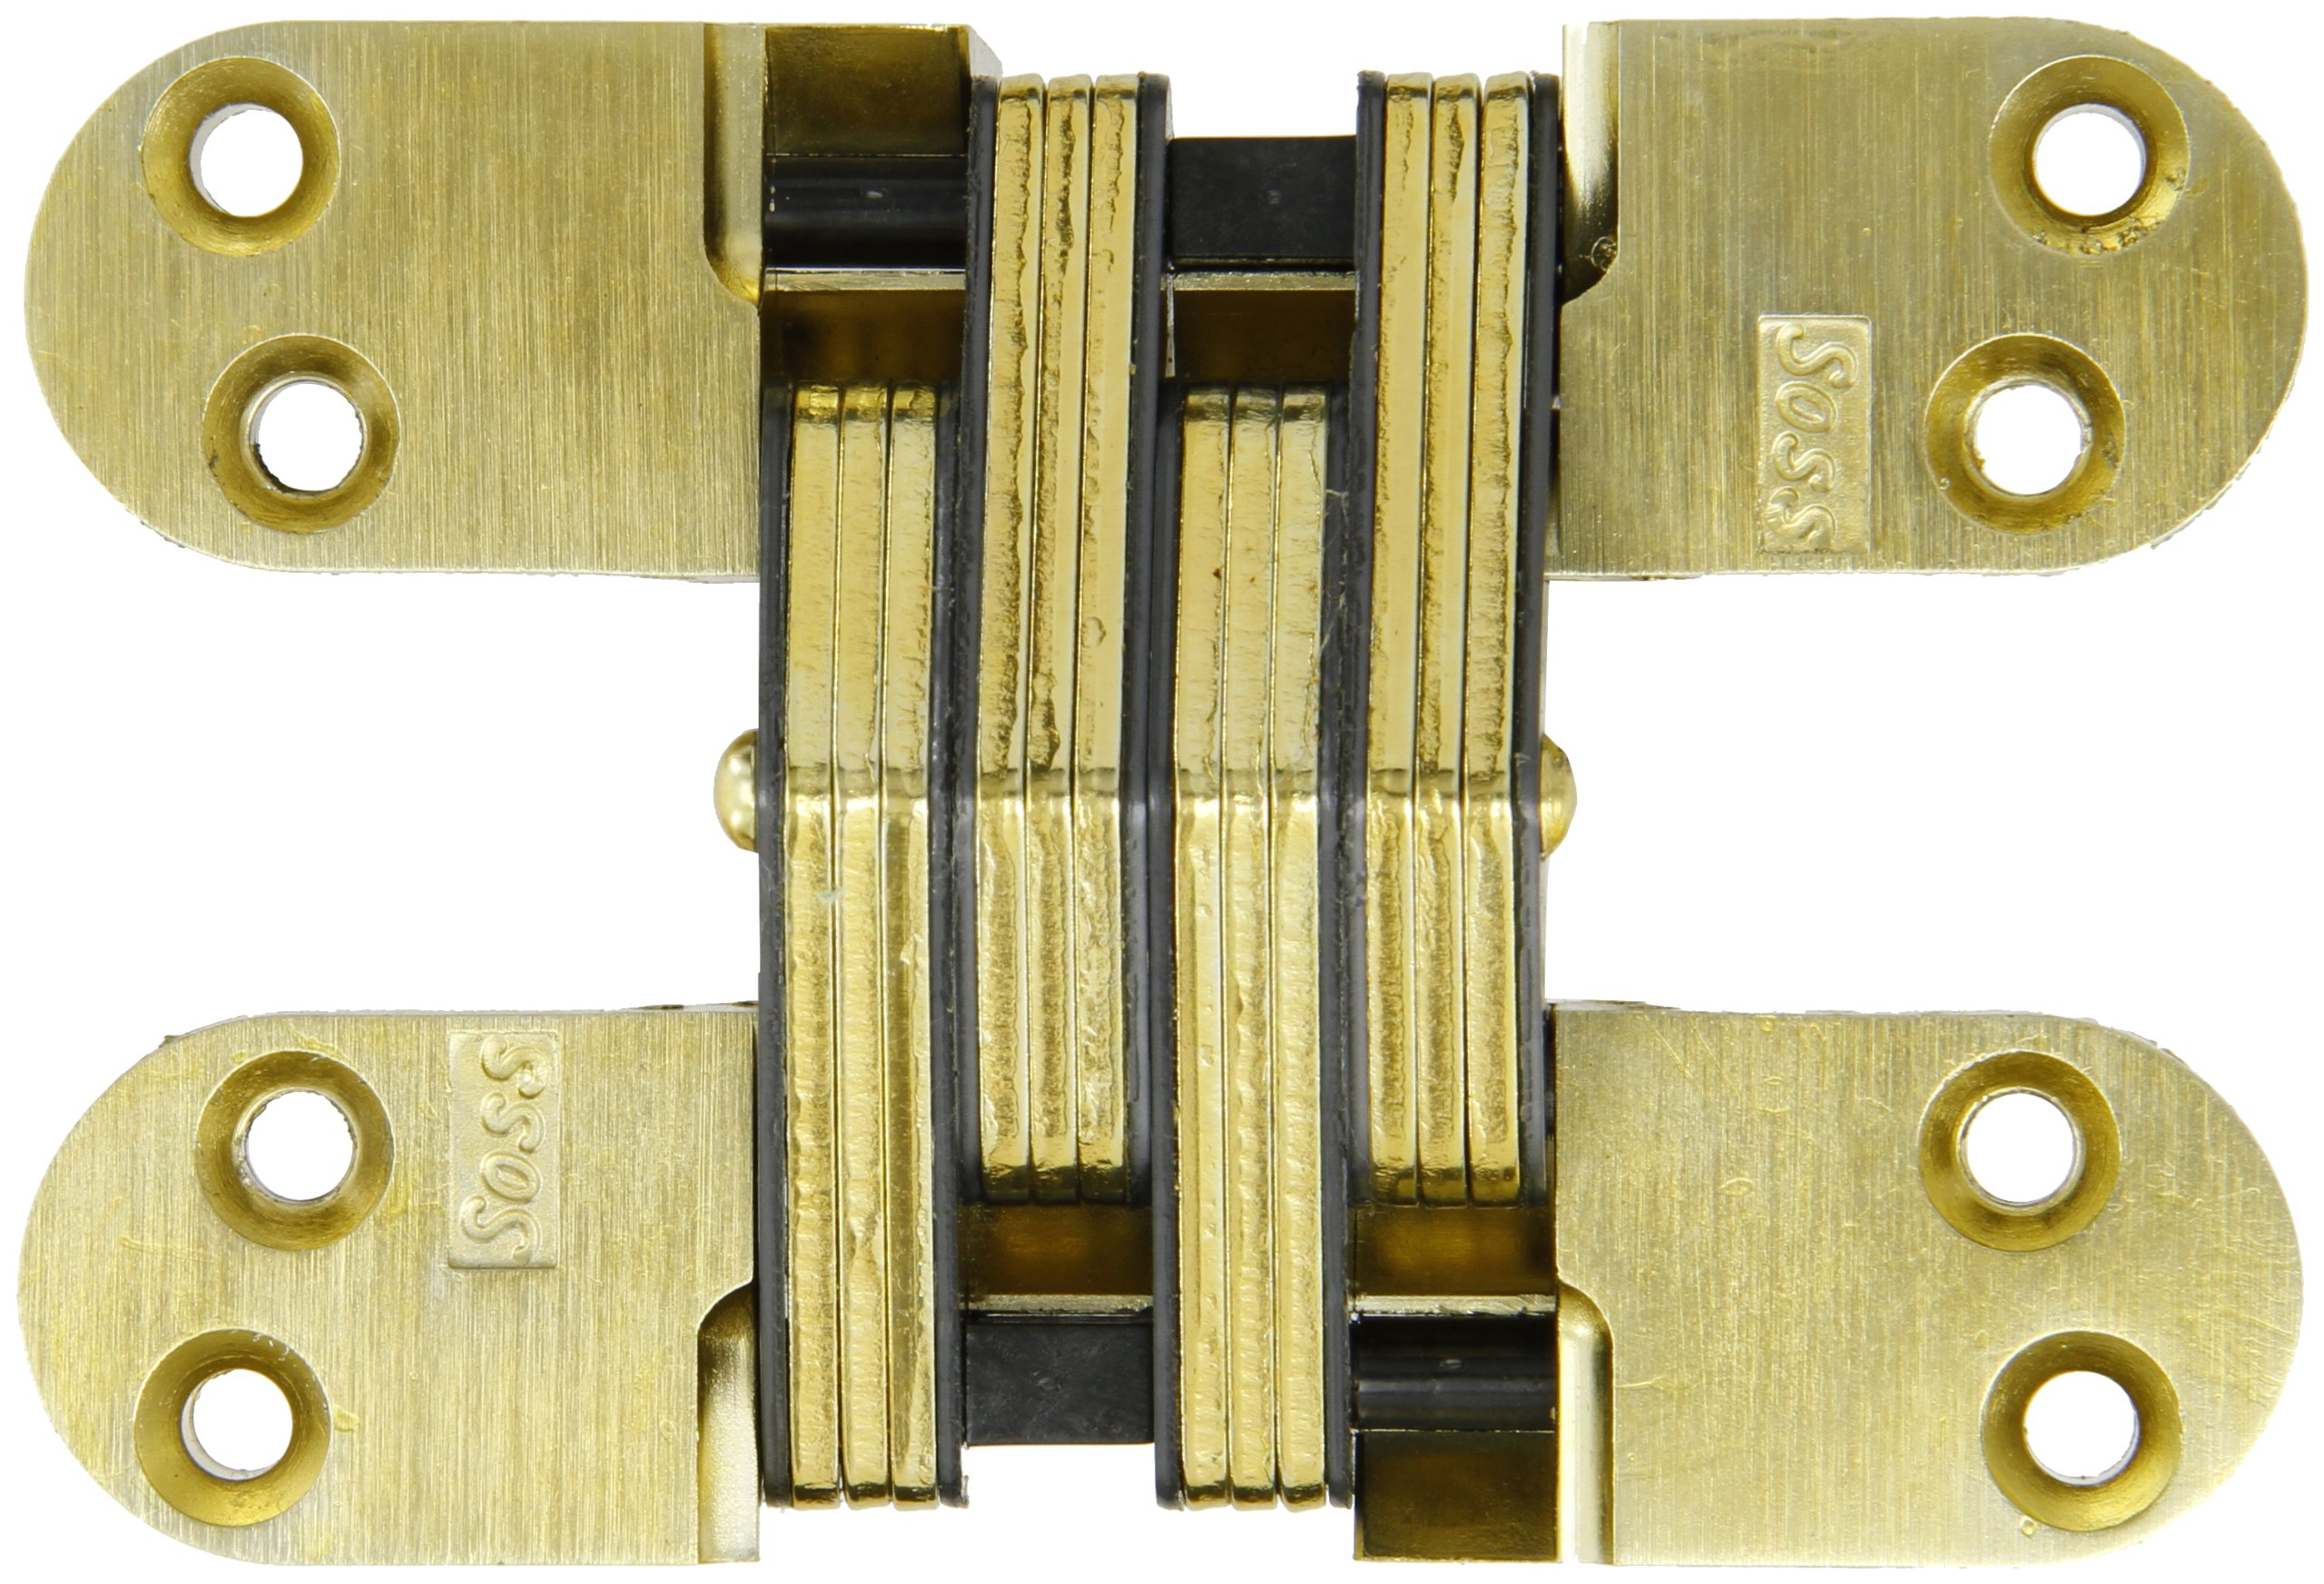 SOSS Mortise Mount Invisible Hinge with 8 Holes, Zinc, Satin Brass Finish, 4-5/8'' Leaf Height, 1-1/8'' Leaf Width, 1-41/64'' Leaf Thickness, 10 x 1-1/2'' Screw Size